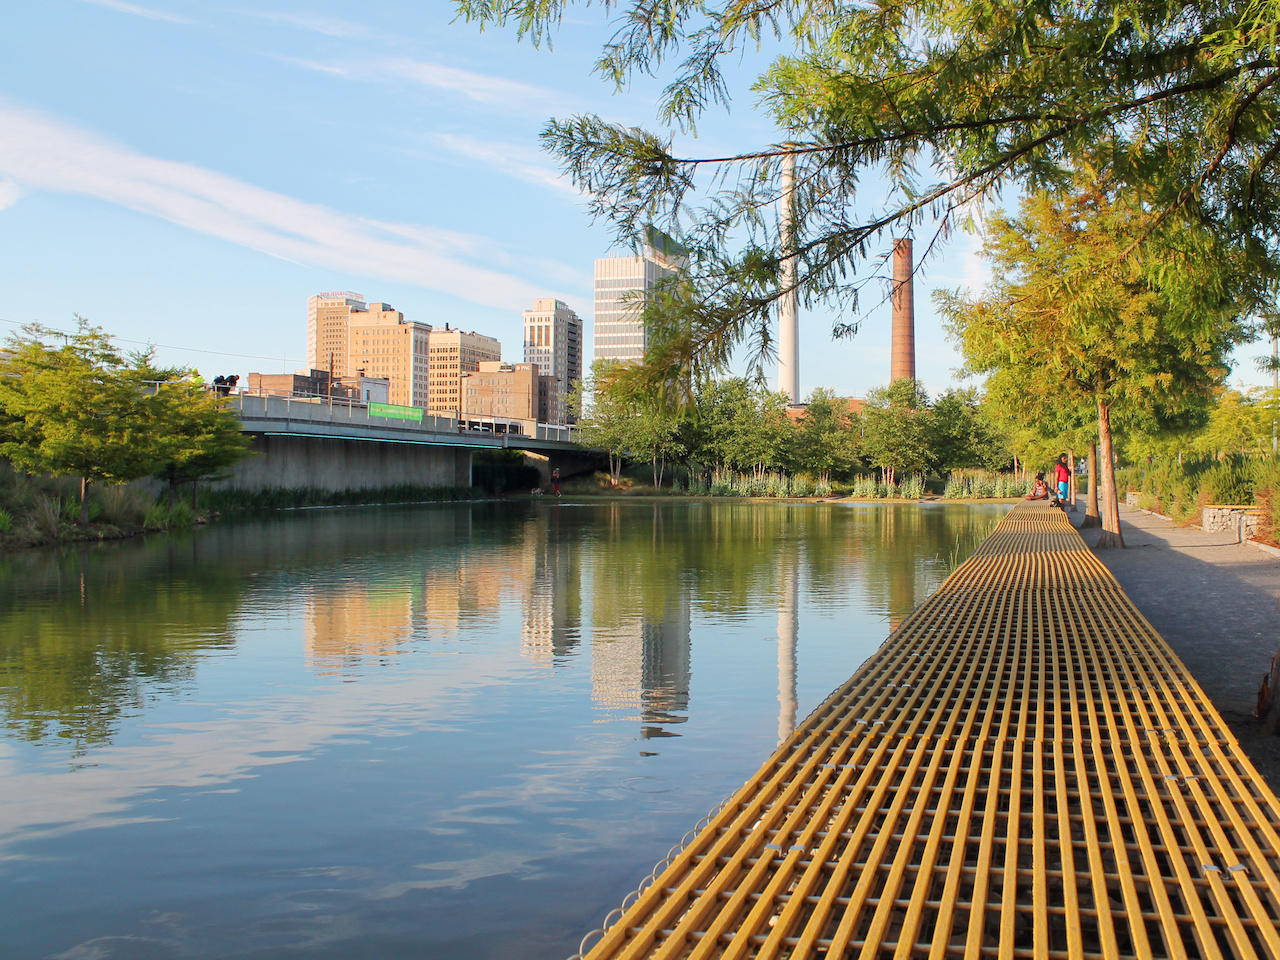 Soak up a moment of serenity or quiet conversation at Railroad Park.